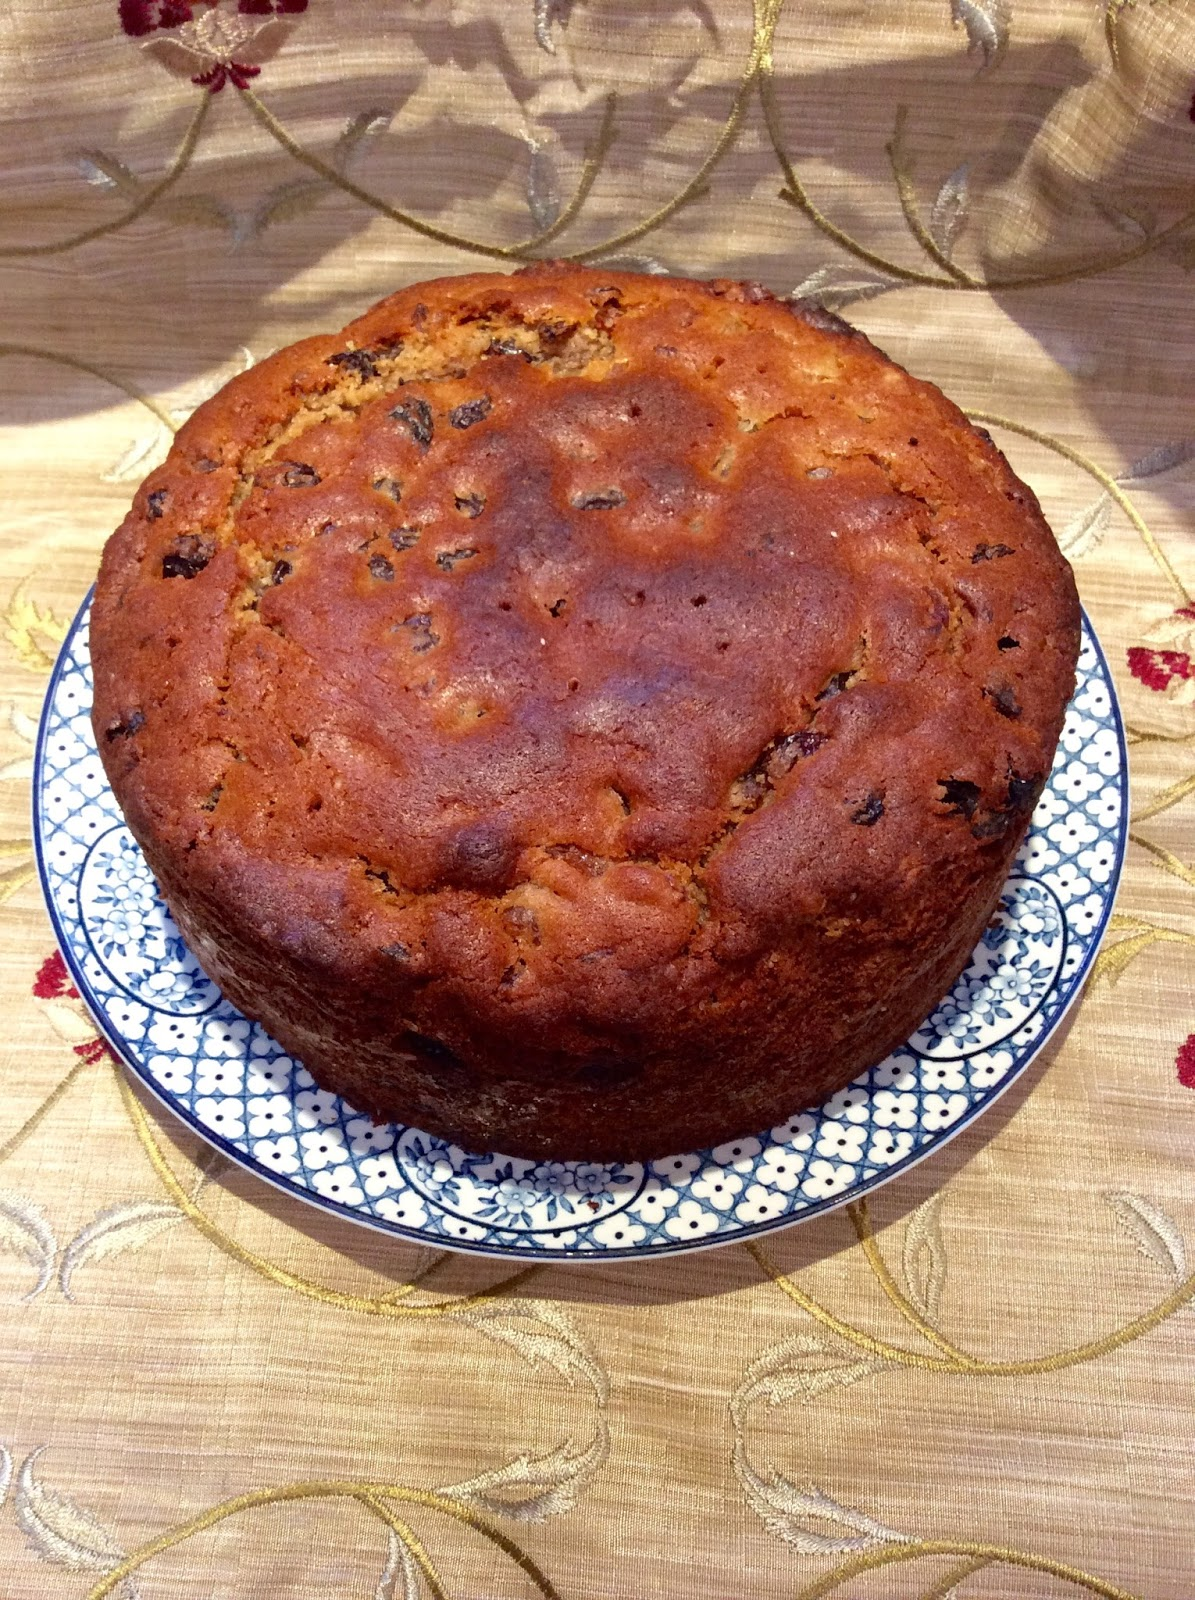 Chez Maximka: Boiled fruit cake